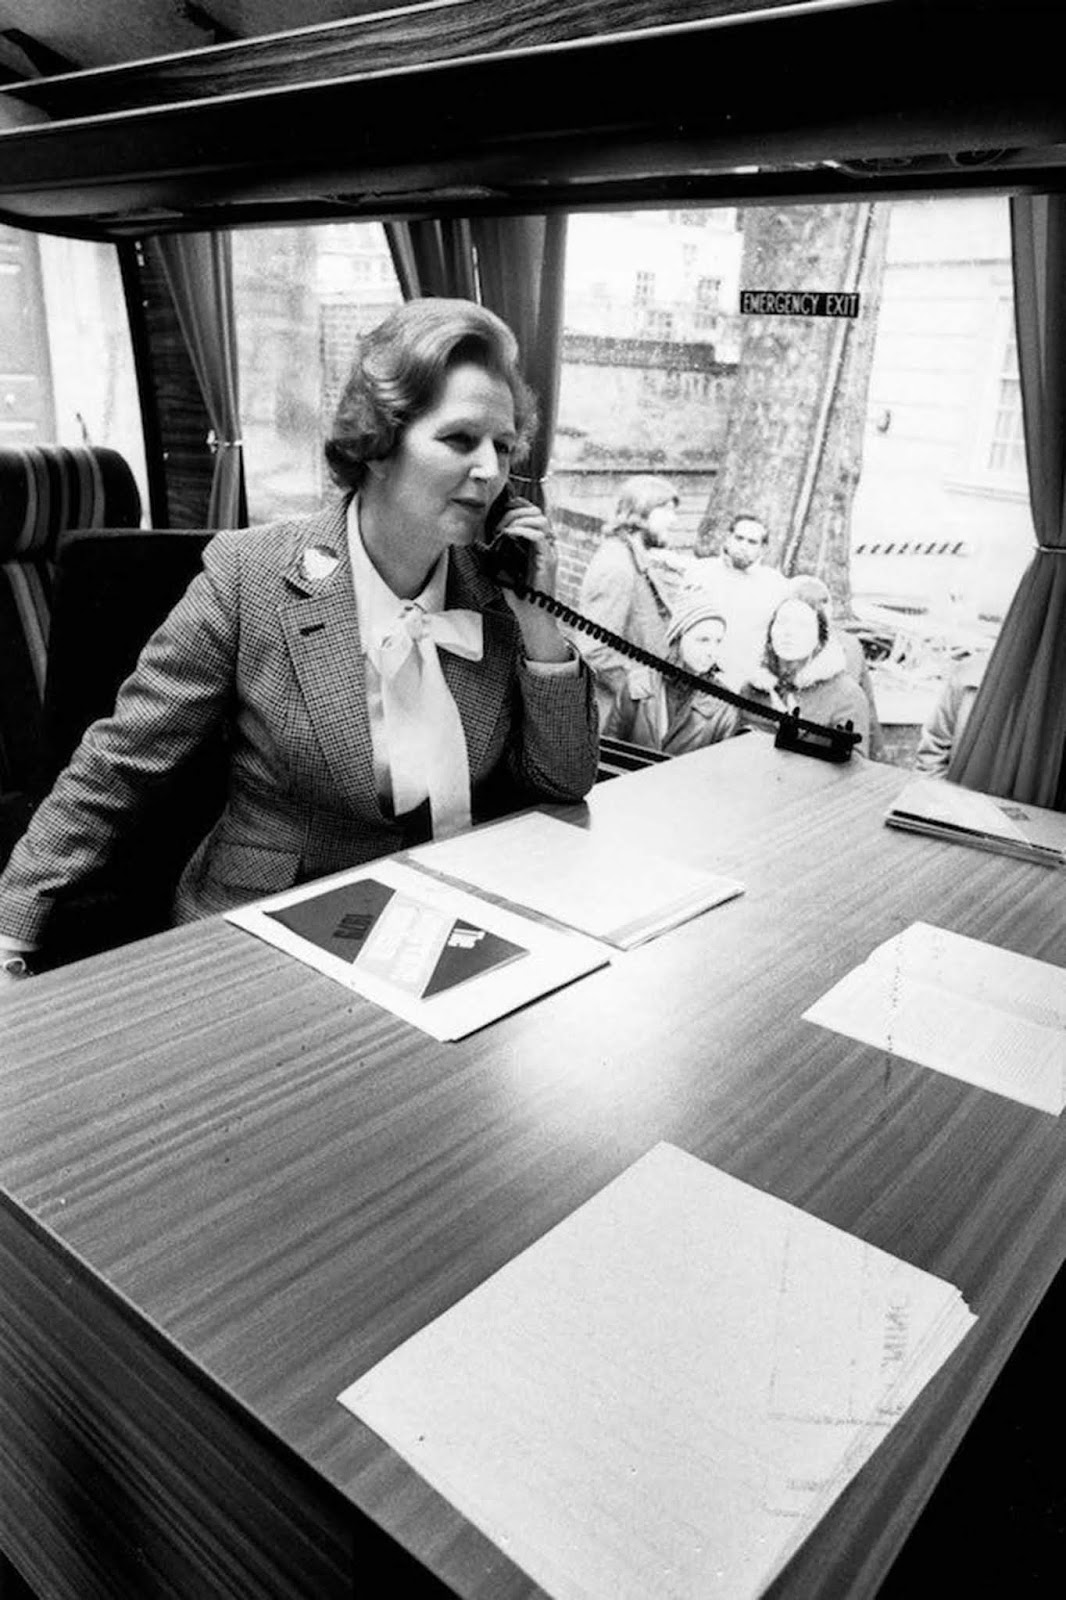 Margaret Thatcher making a telephone call in the Conservative Party coach during her election campaign. She wears a checked jacket and a blouse tied with a large bow. Her hair has a strong wave. 1979.